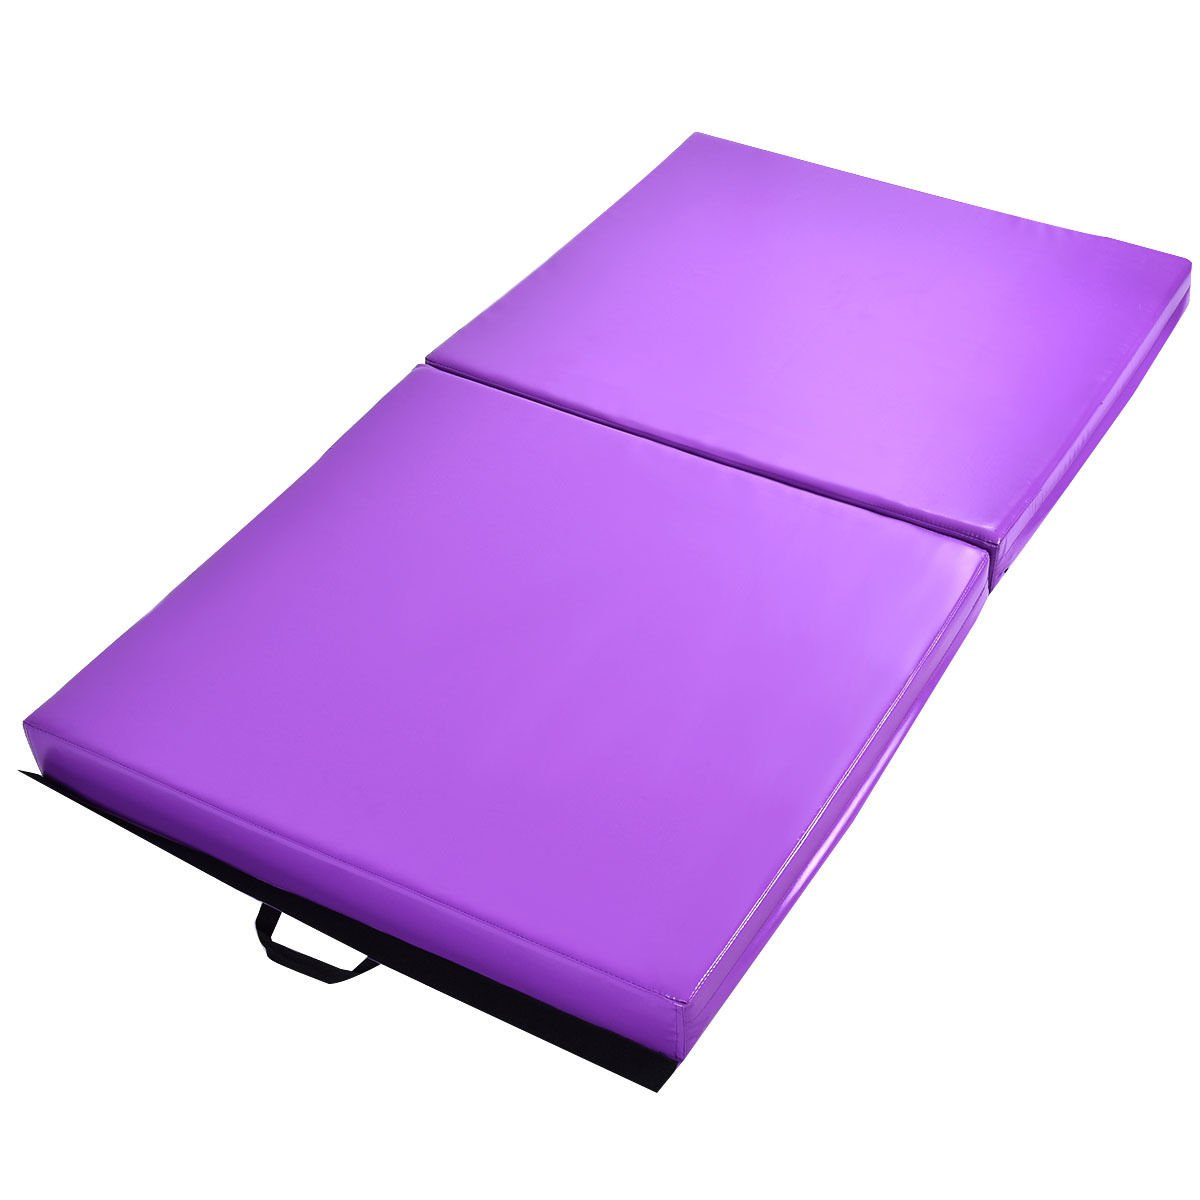 New 6'x38''X4'' Gymnastics Mat Thick Two Folding Panel Fitness Exercise Purple by MTN Gearsmith (Image #3)